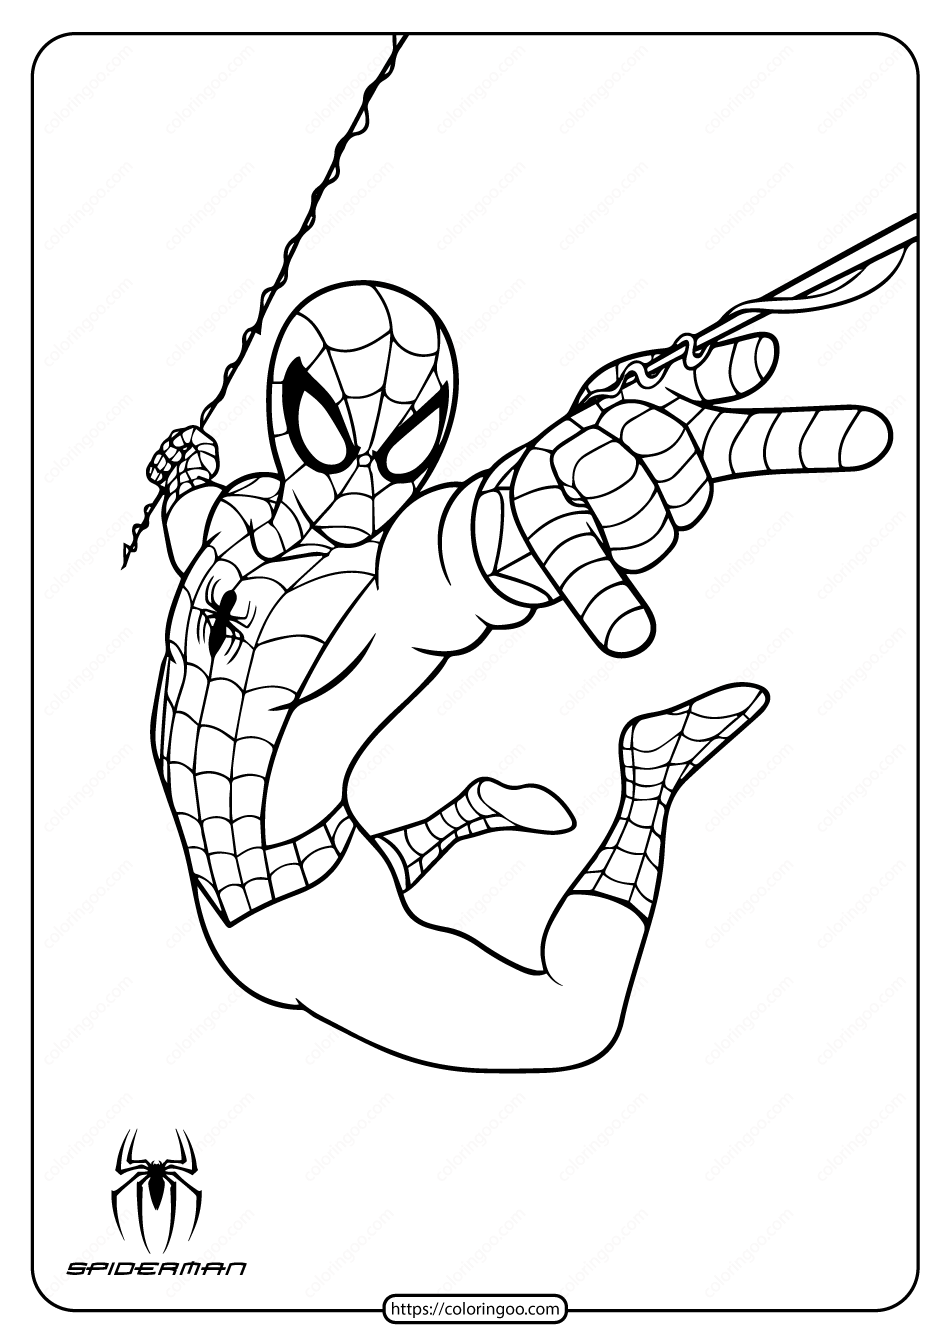 Printable Spiderman In Action Coloring Page Spiderman Coloring Cartoon Coloring Pages Coloring Pages